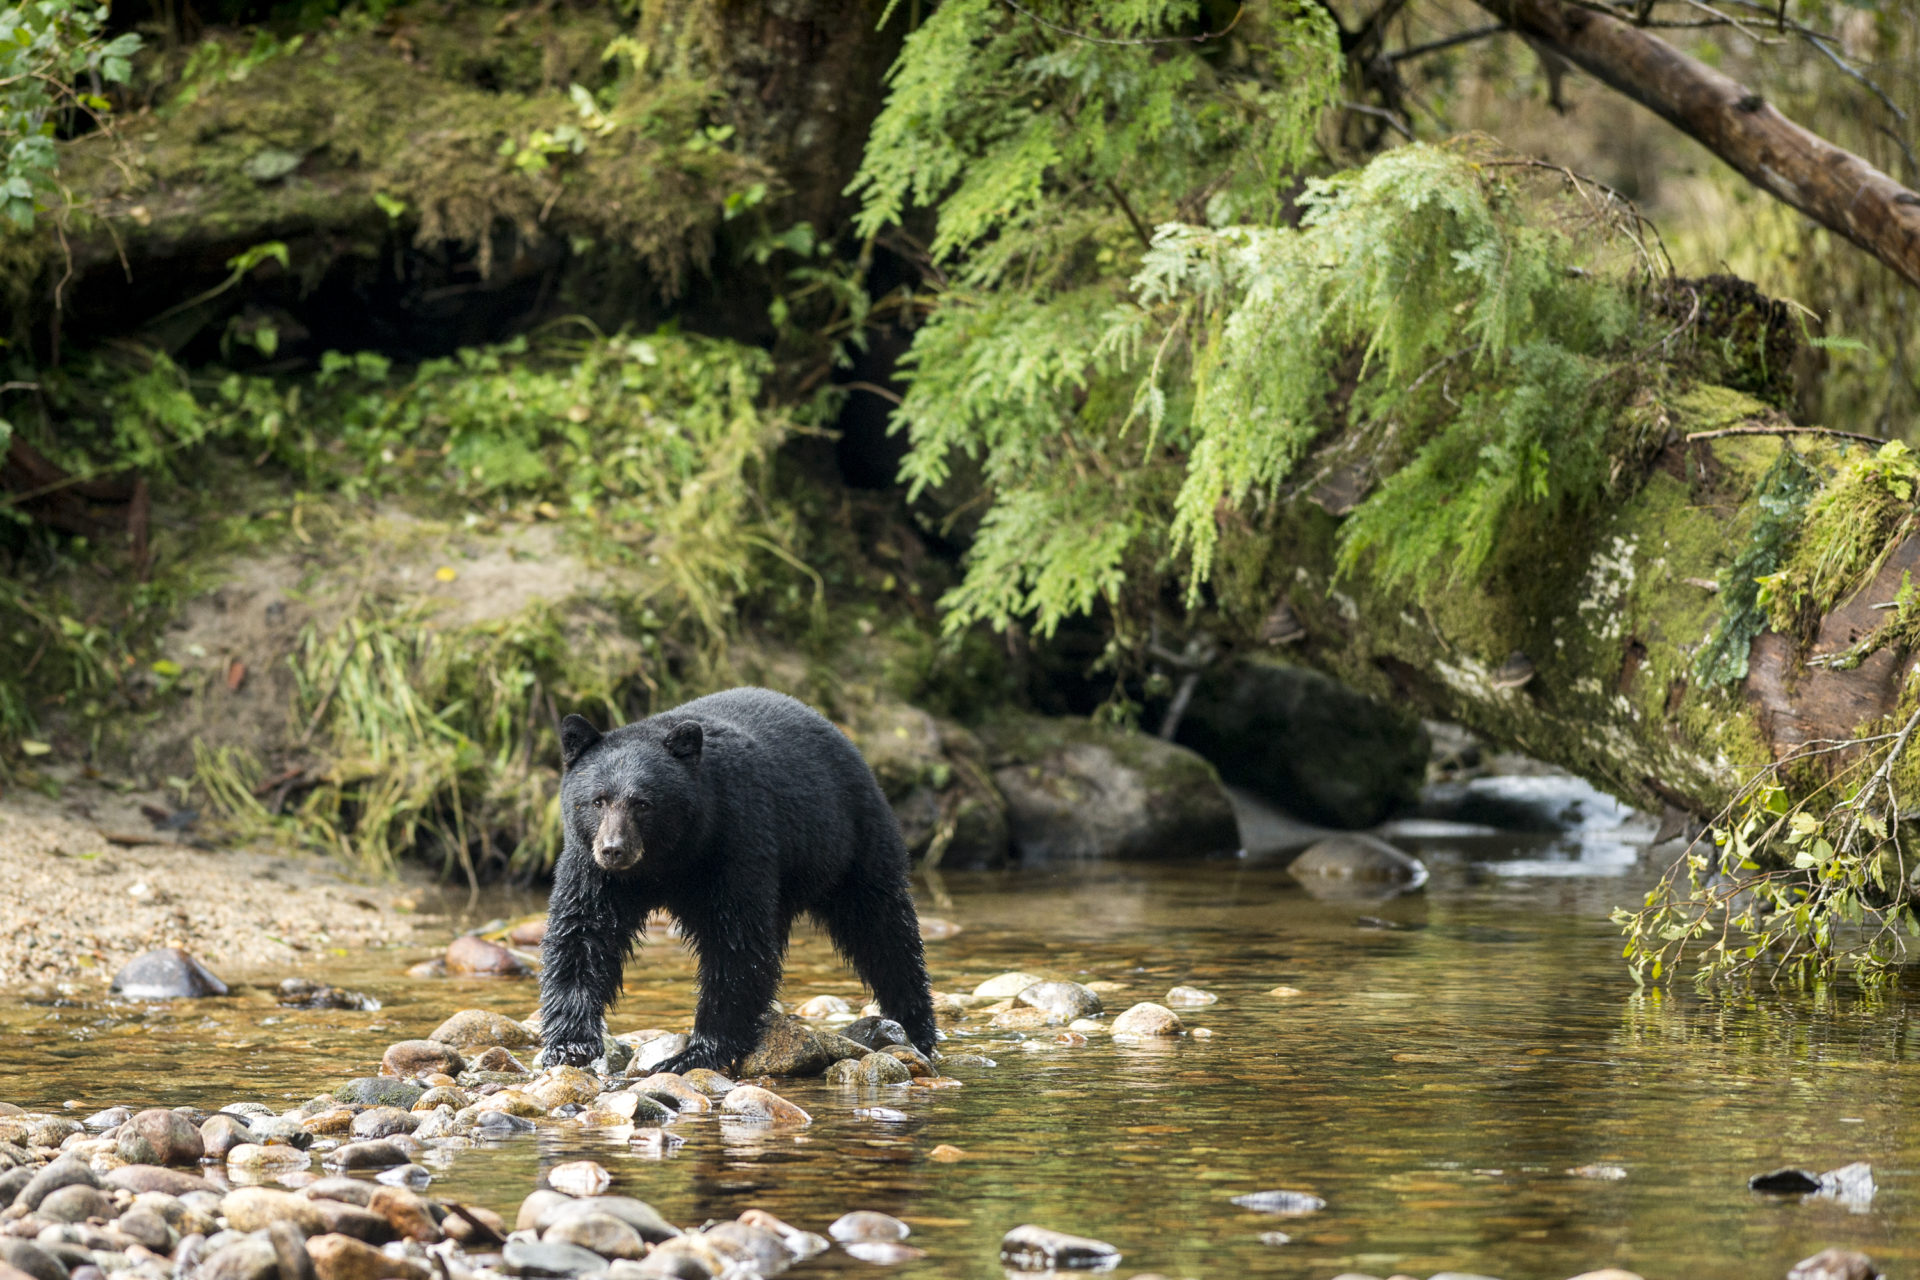 Black bear in the Great Bear Rainforest